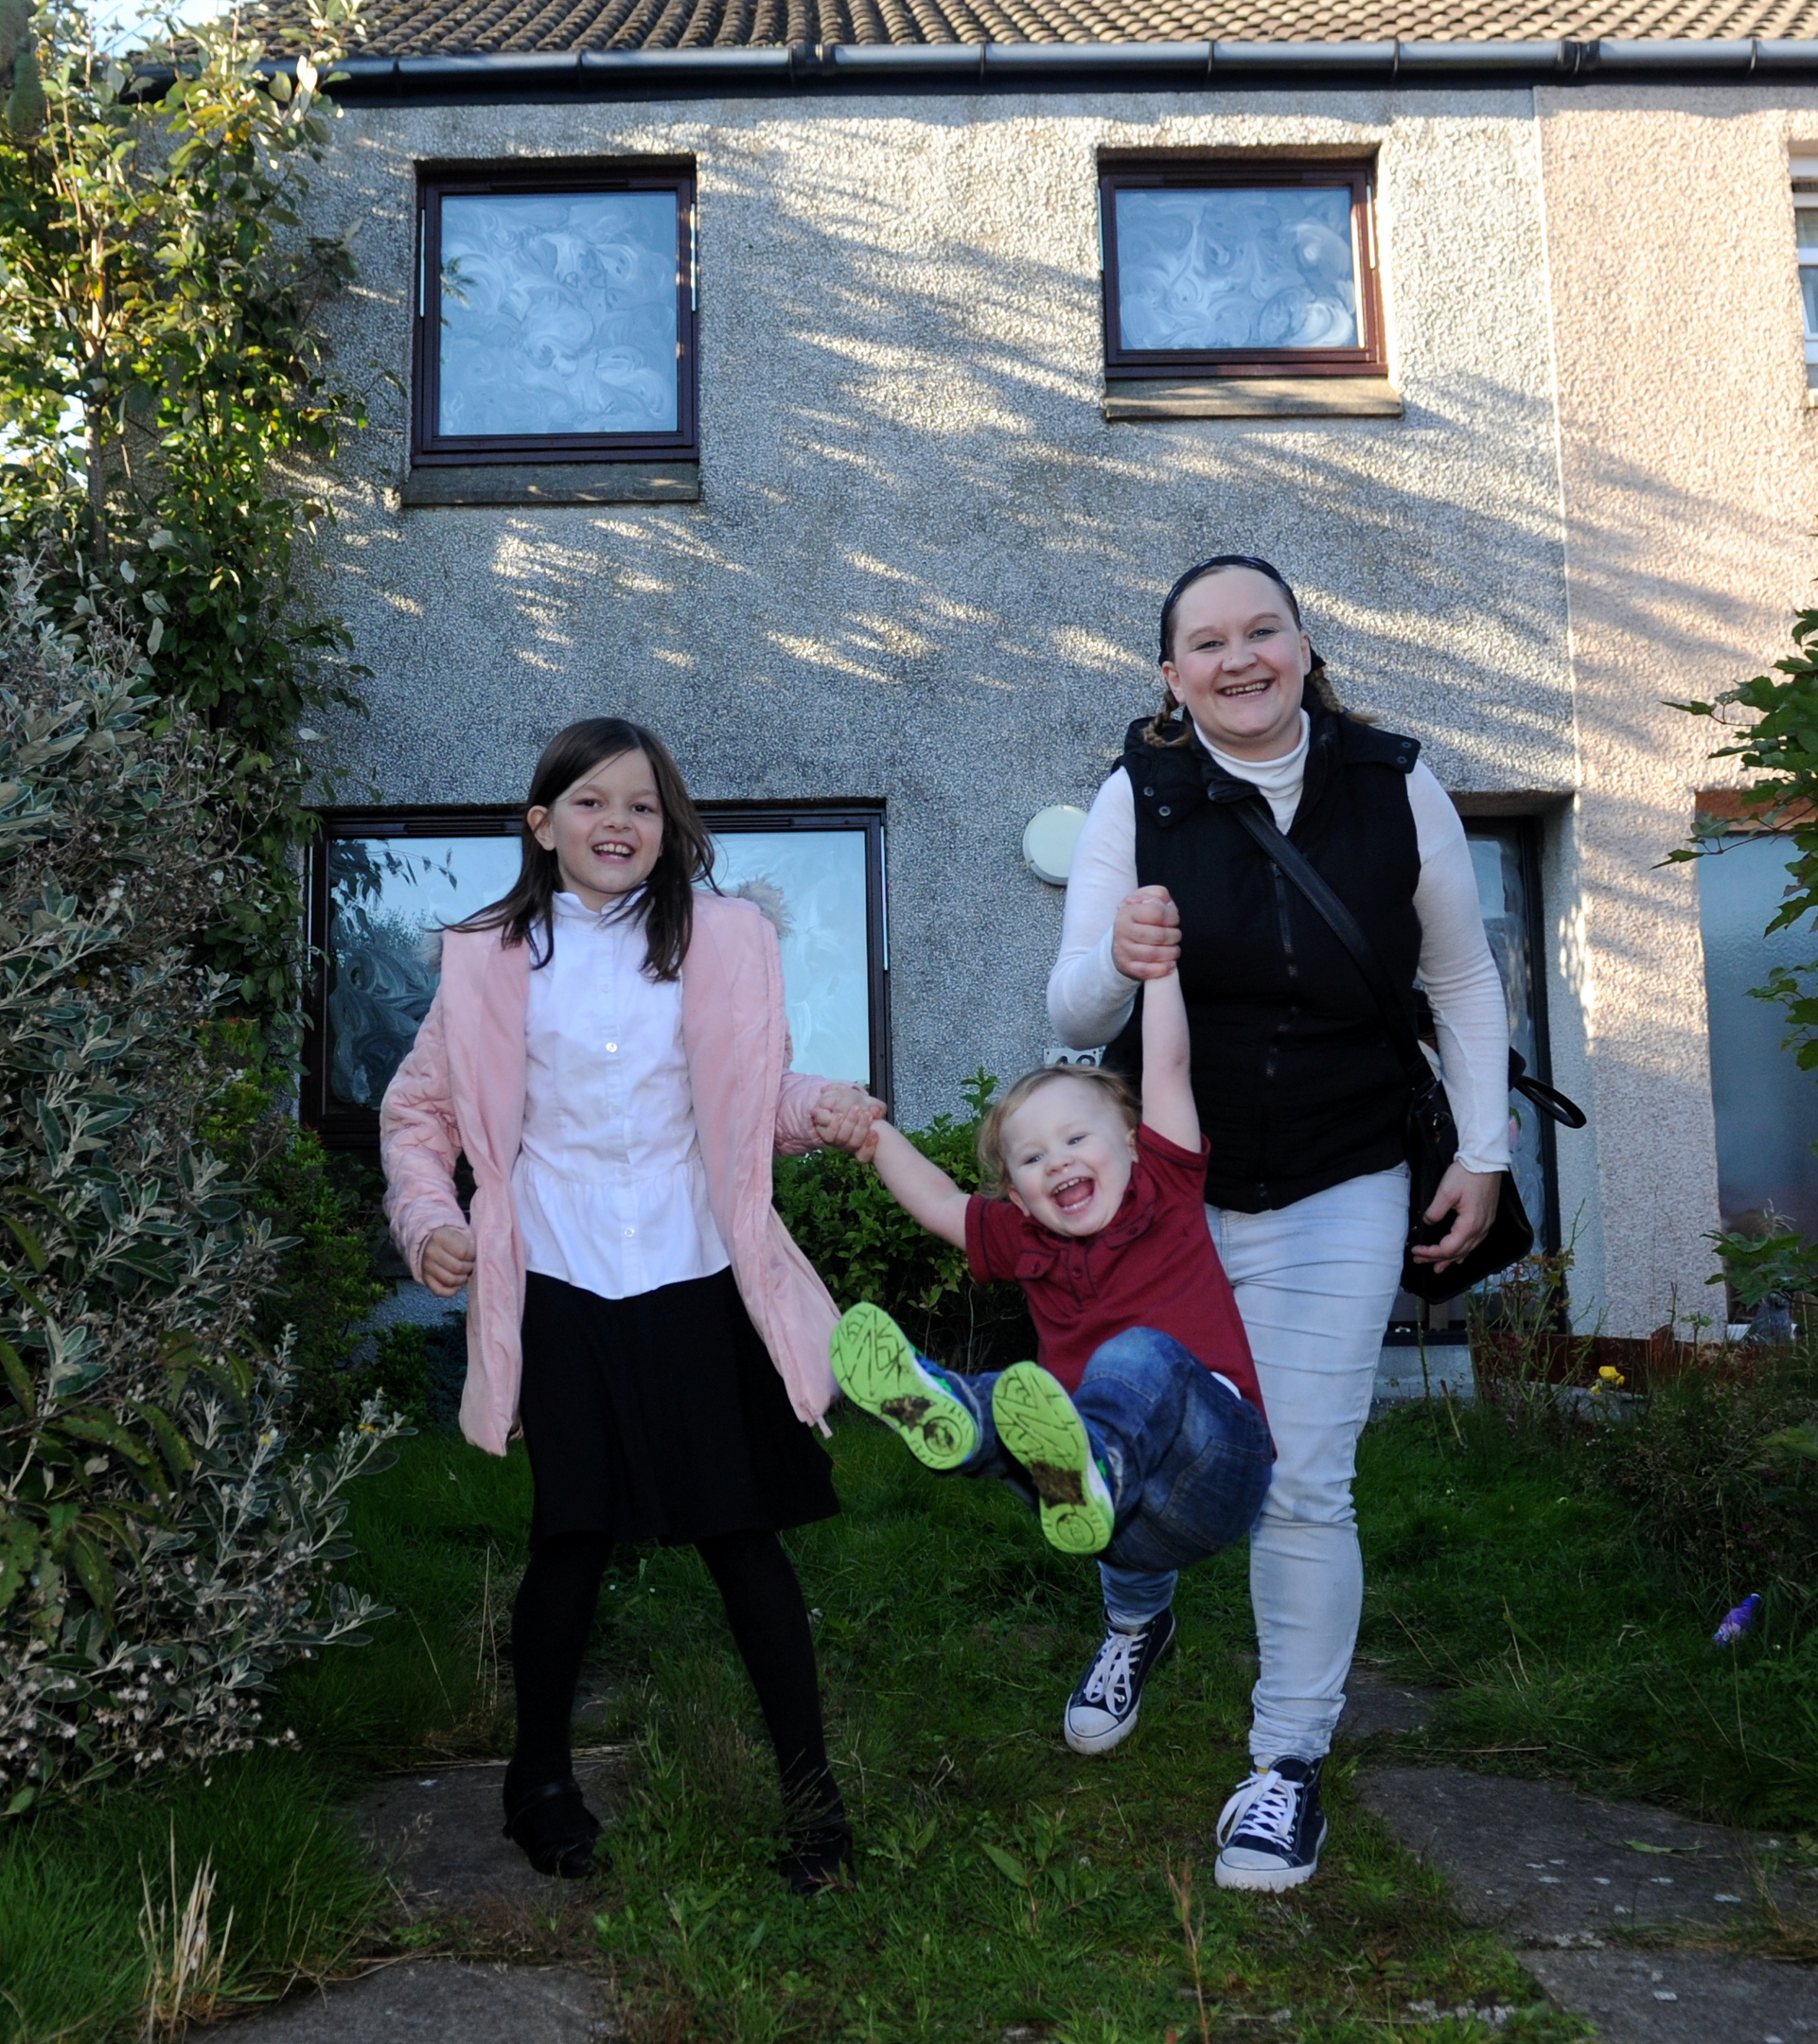 happy:  Donna Crossley with two of her children Shannon Crossley and Cohen Bruce outside their new home.  picture by kath flannery